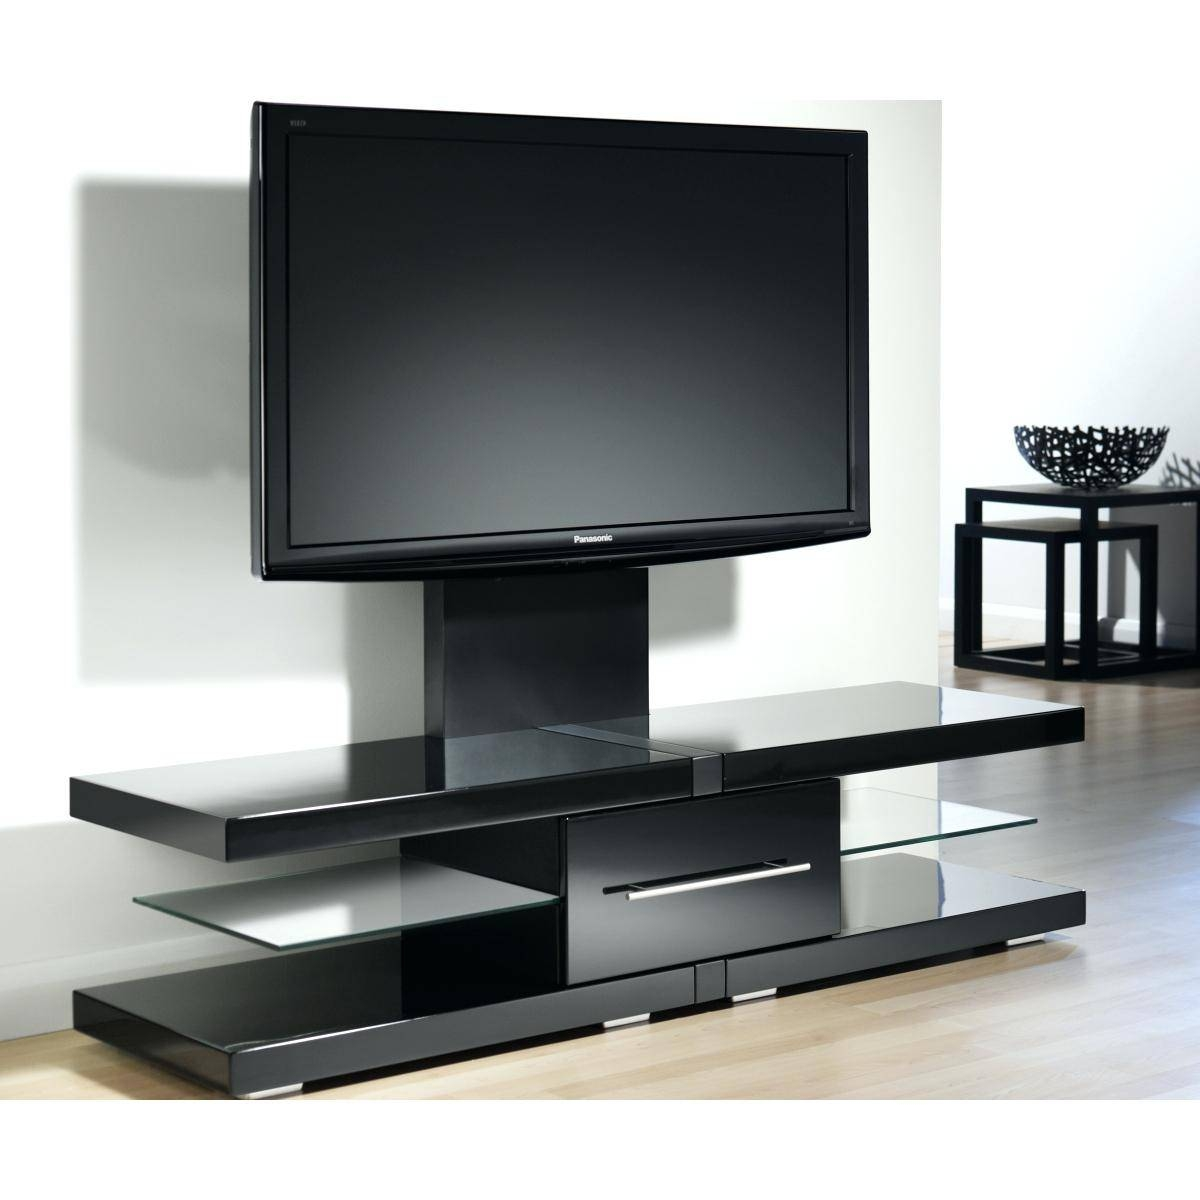 Tv Stand : Modern High Gloss Lacquer Tv Stand 17 Impressive Tv regarding Stylish Tv Stands (Image 13 of 15)